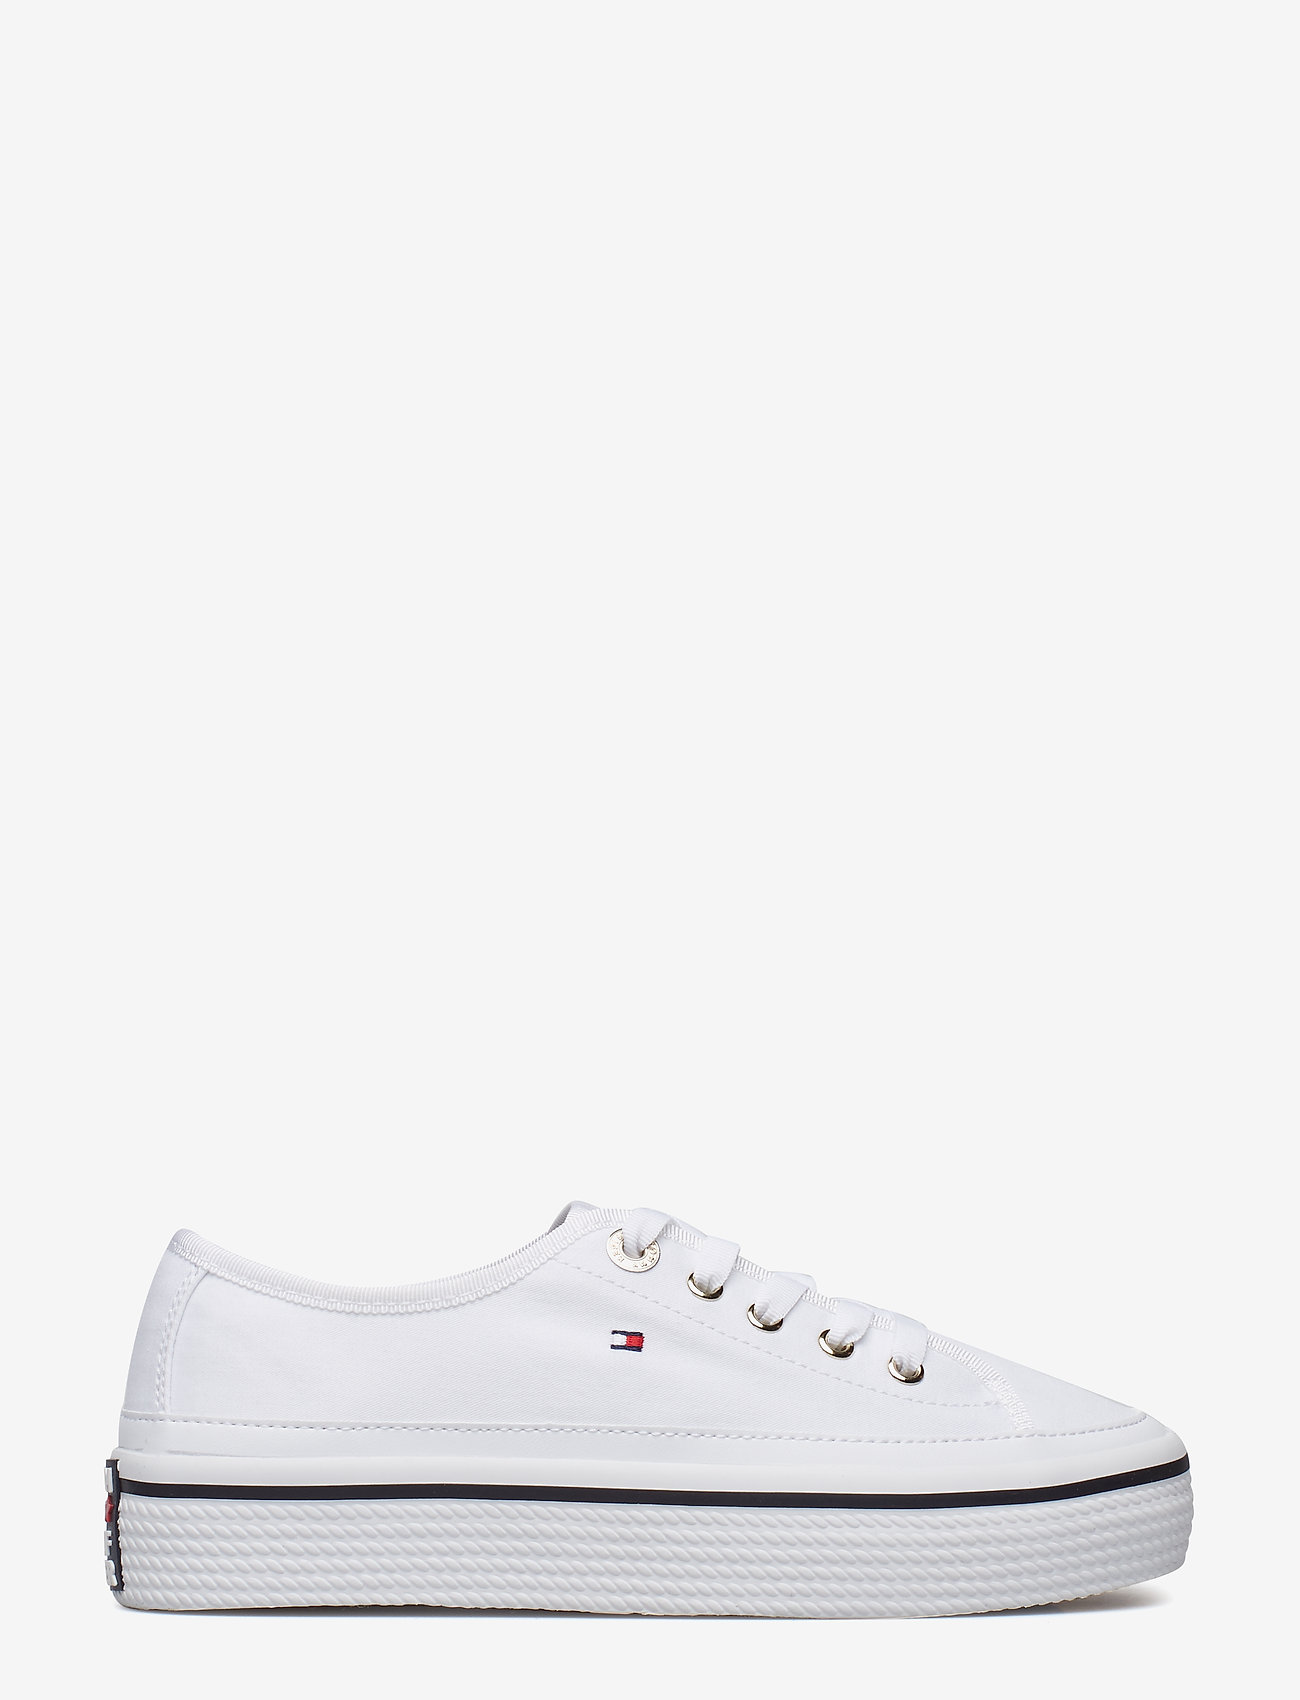 Tommy Hilfiger - CORPORATE FLATFORM SNEAKER - low top sneakers - white - 1